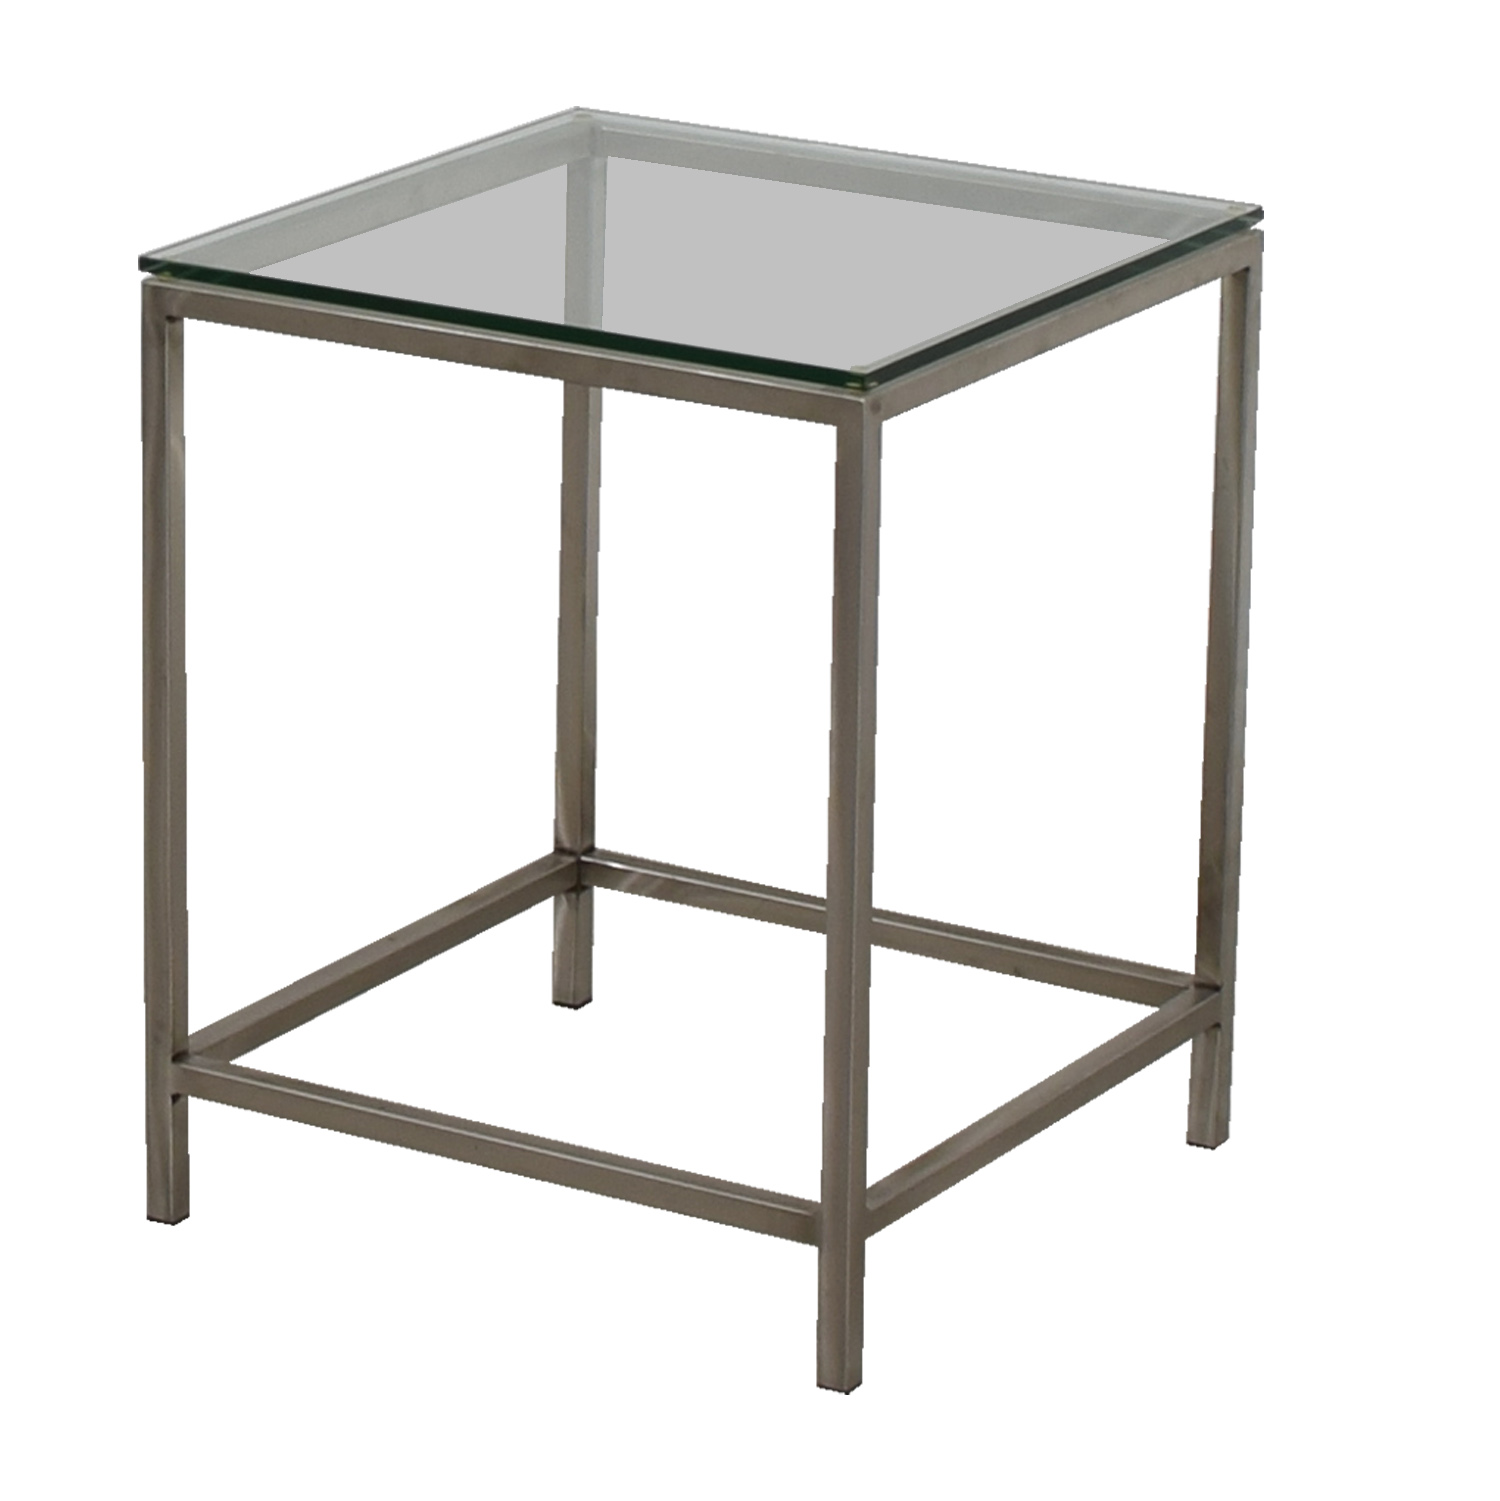 crate and barrel crate and barrel square glass and chrome side table